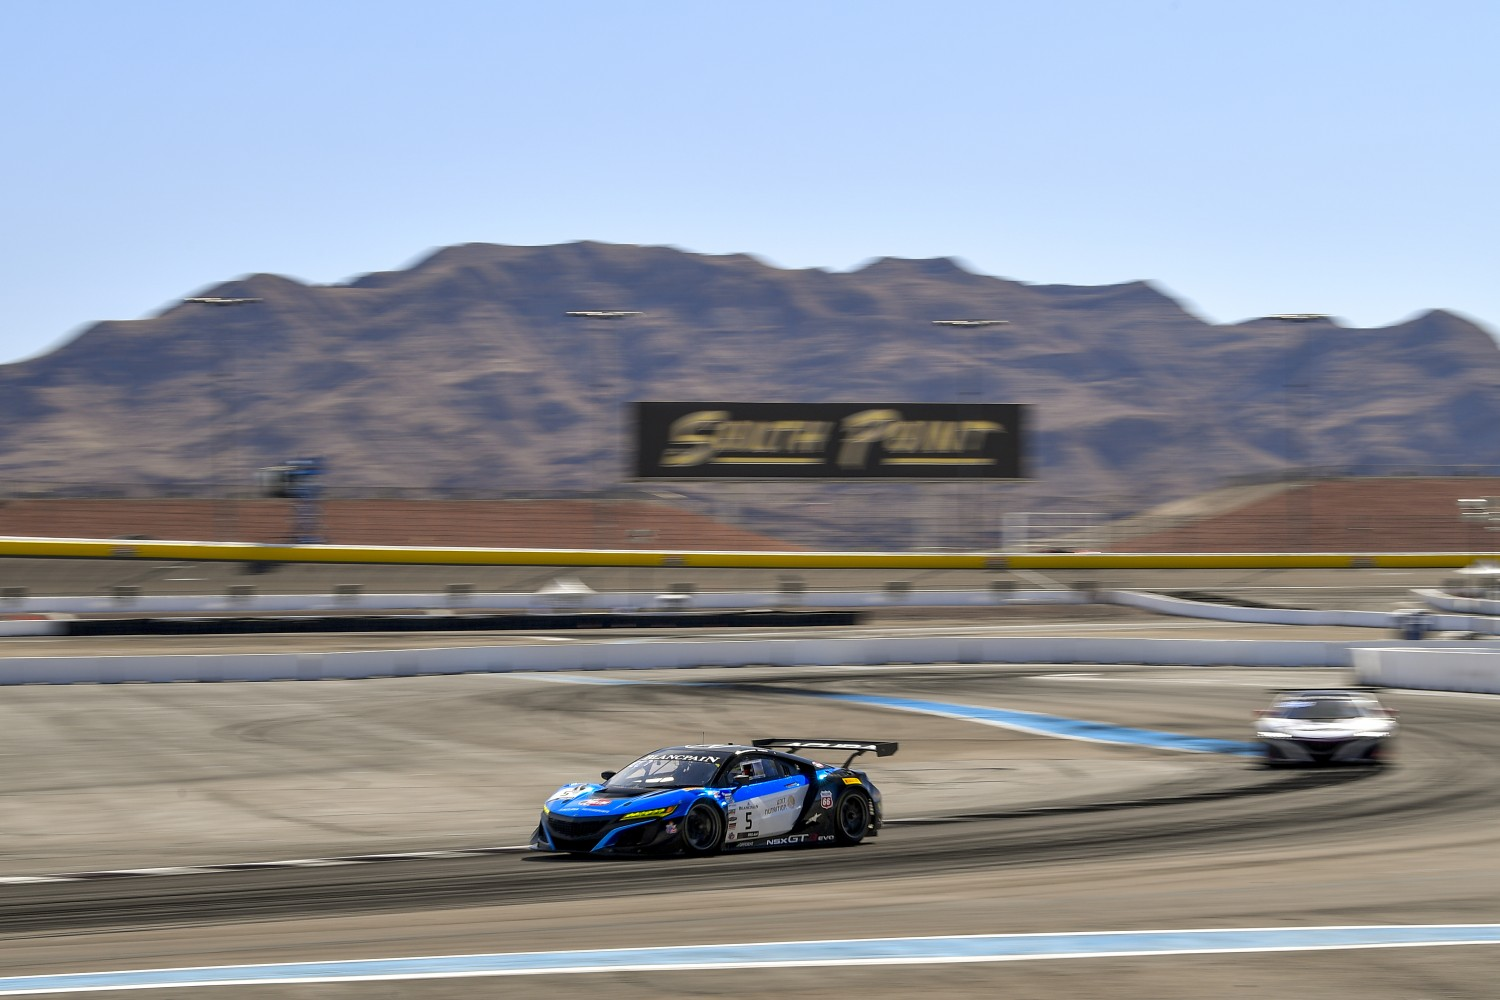 #5 Acura NSX of Till Bechtolsheimer and Marc Miller with Gradient Racing  2019 Blancpain GT World Challenge America - Las Vegas, Las Vegas NV | Gavin Baker/SRO